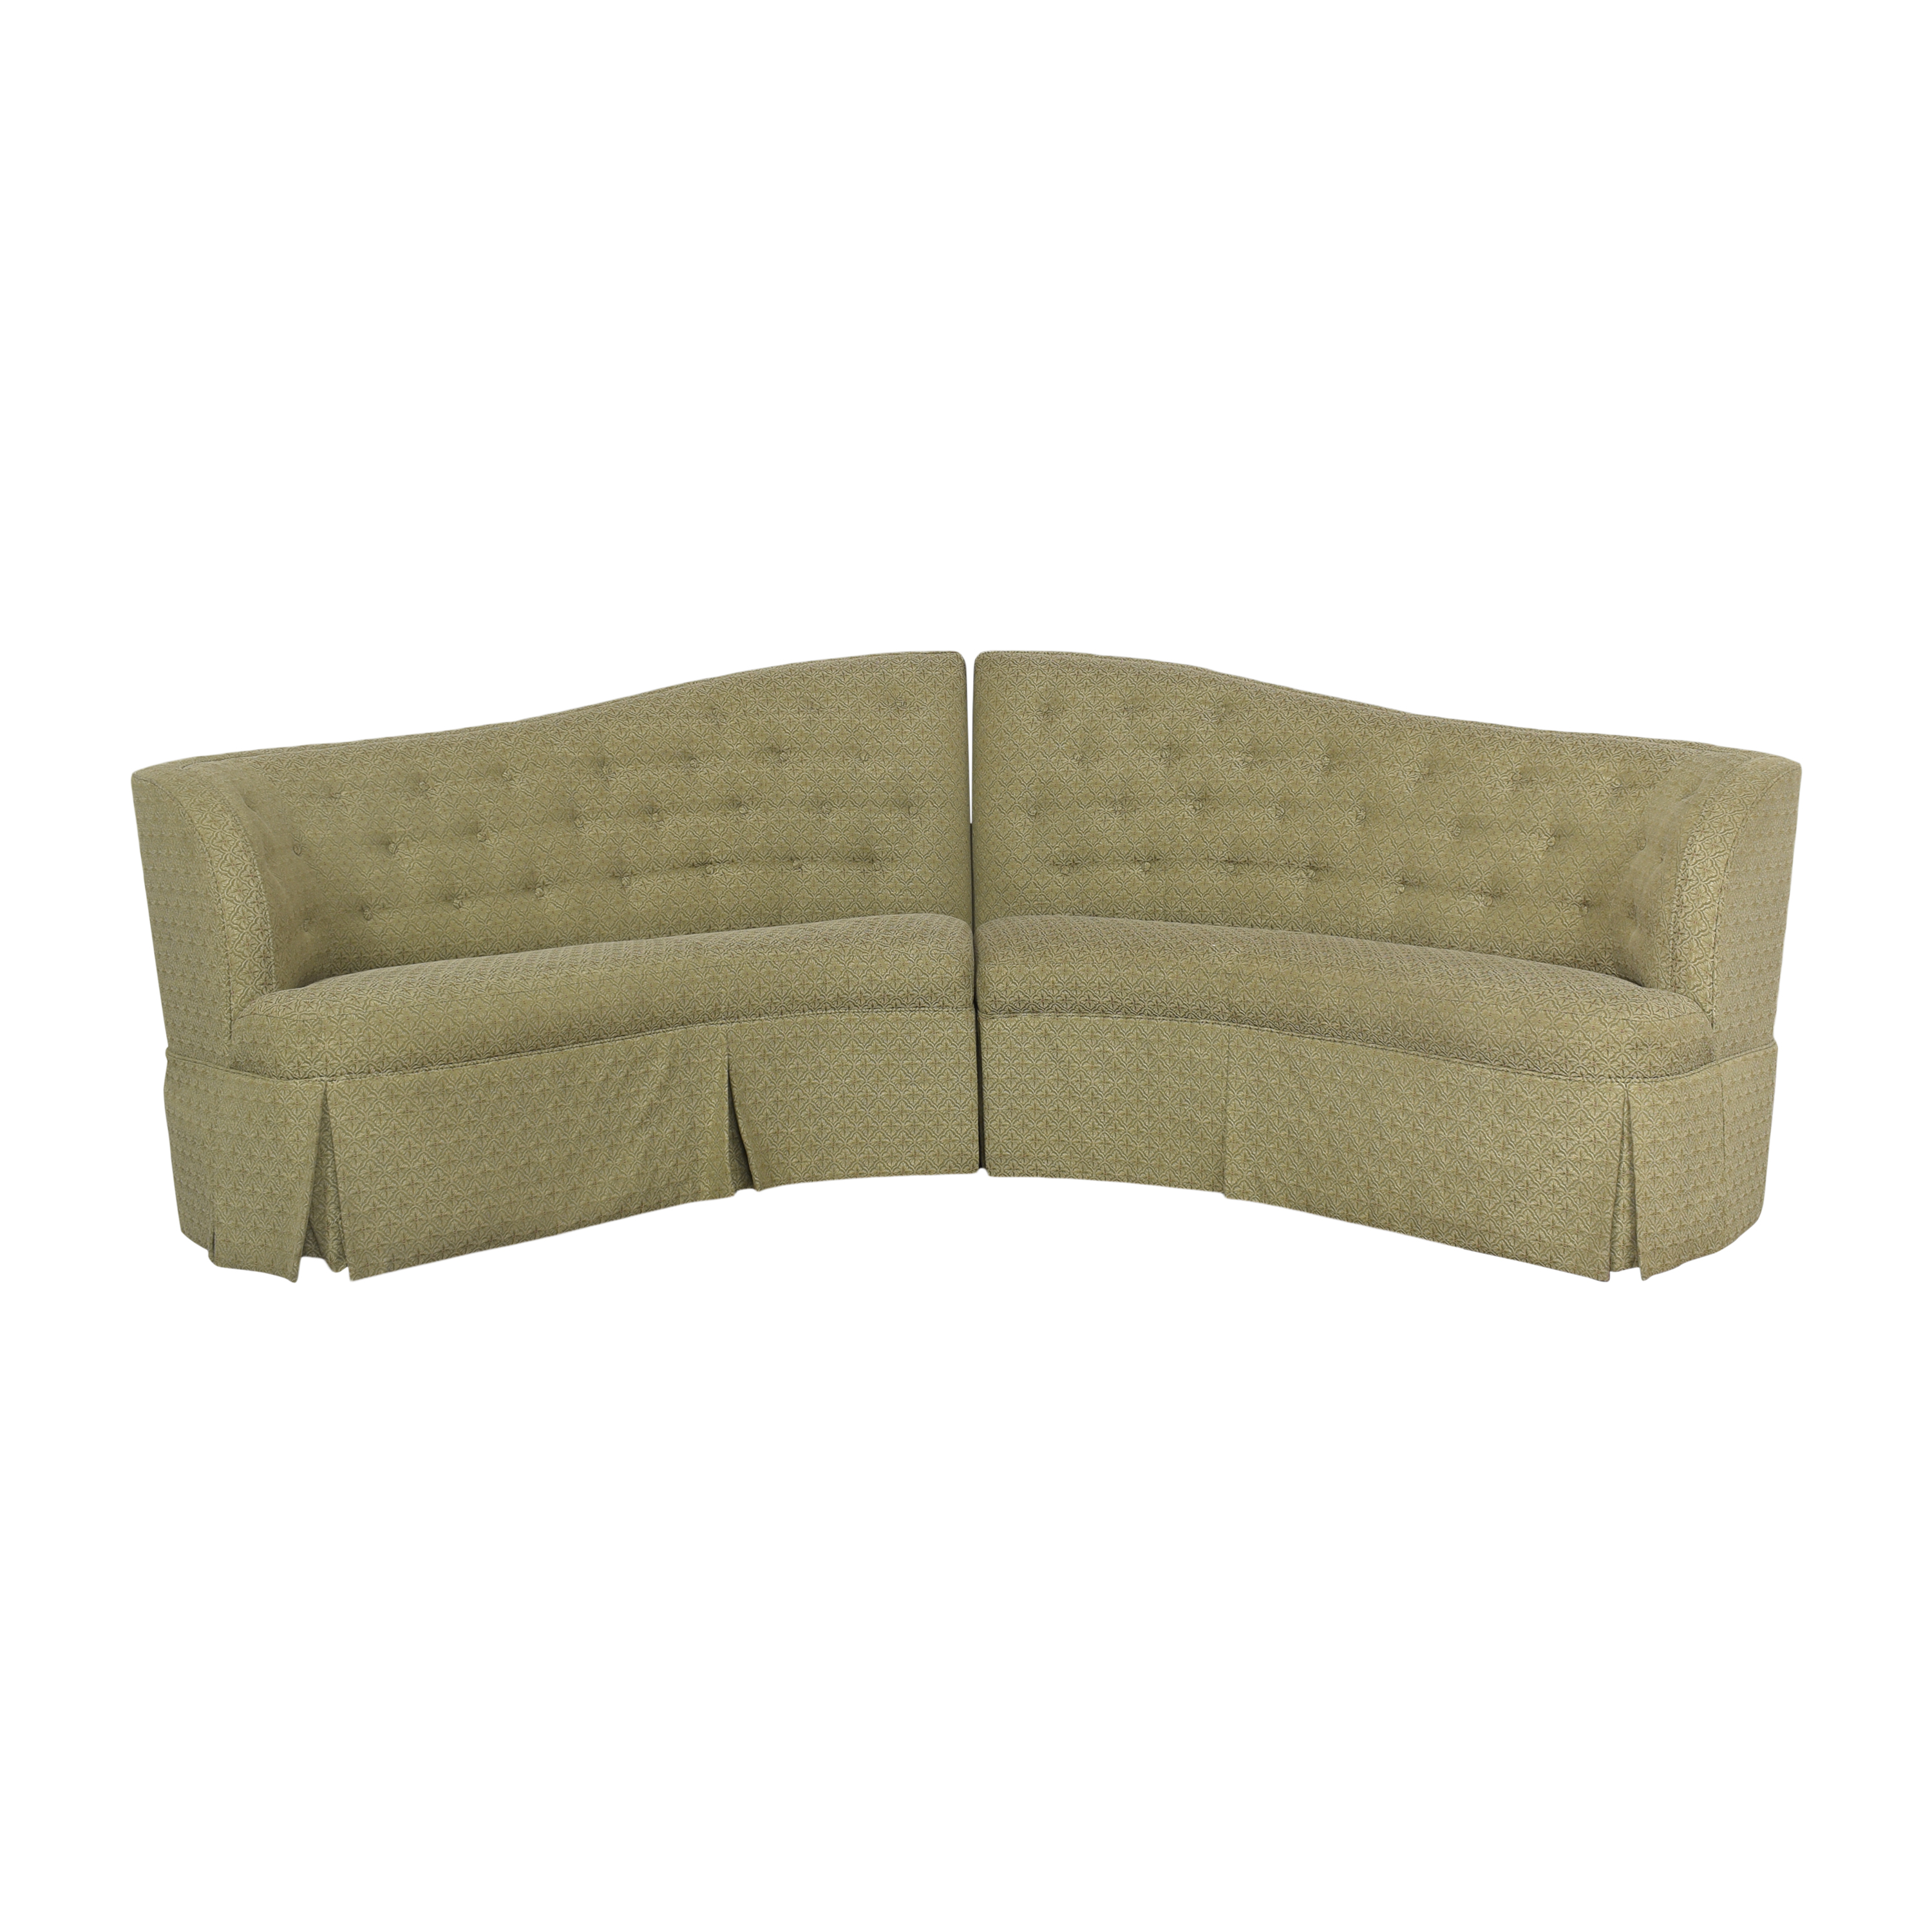 Thomasville Thomasville Curved Sectional Bench Sectionals